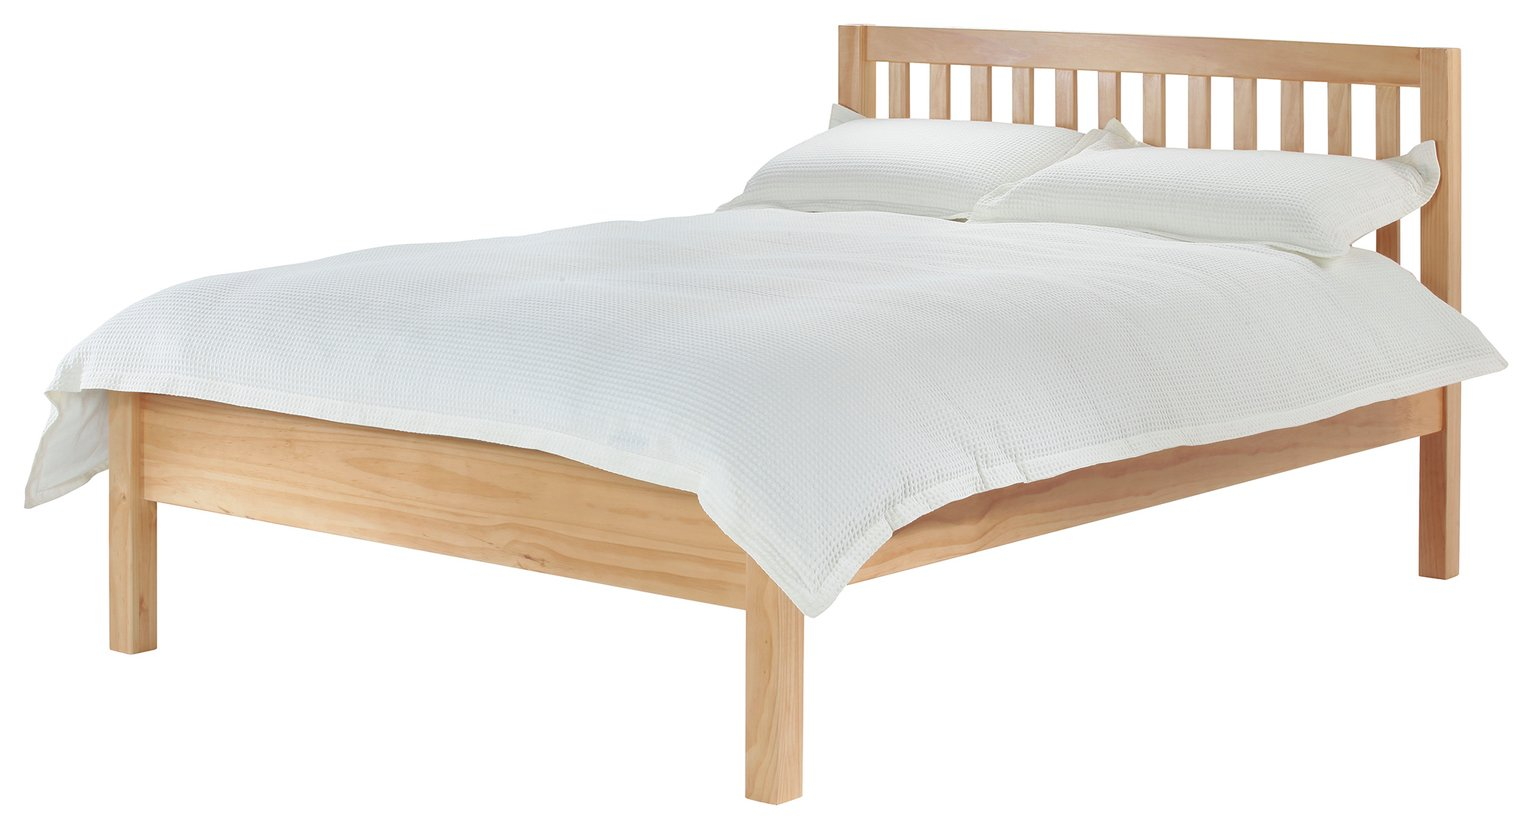 Silentnight Hayes Double Bed Frame - Pine